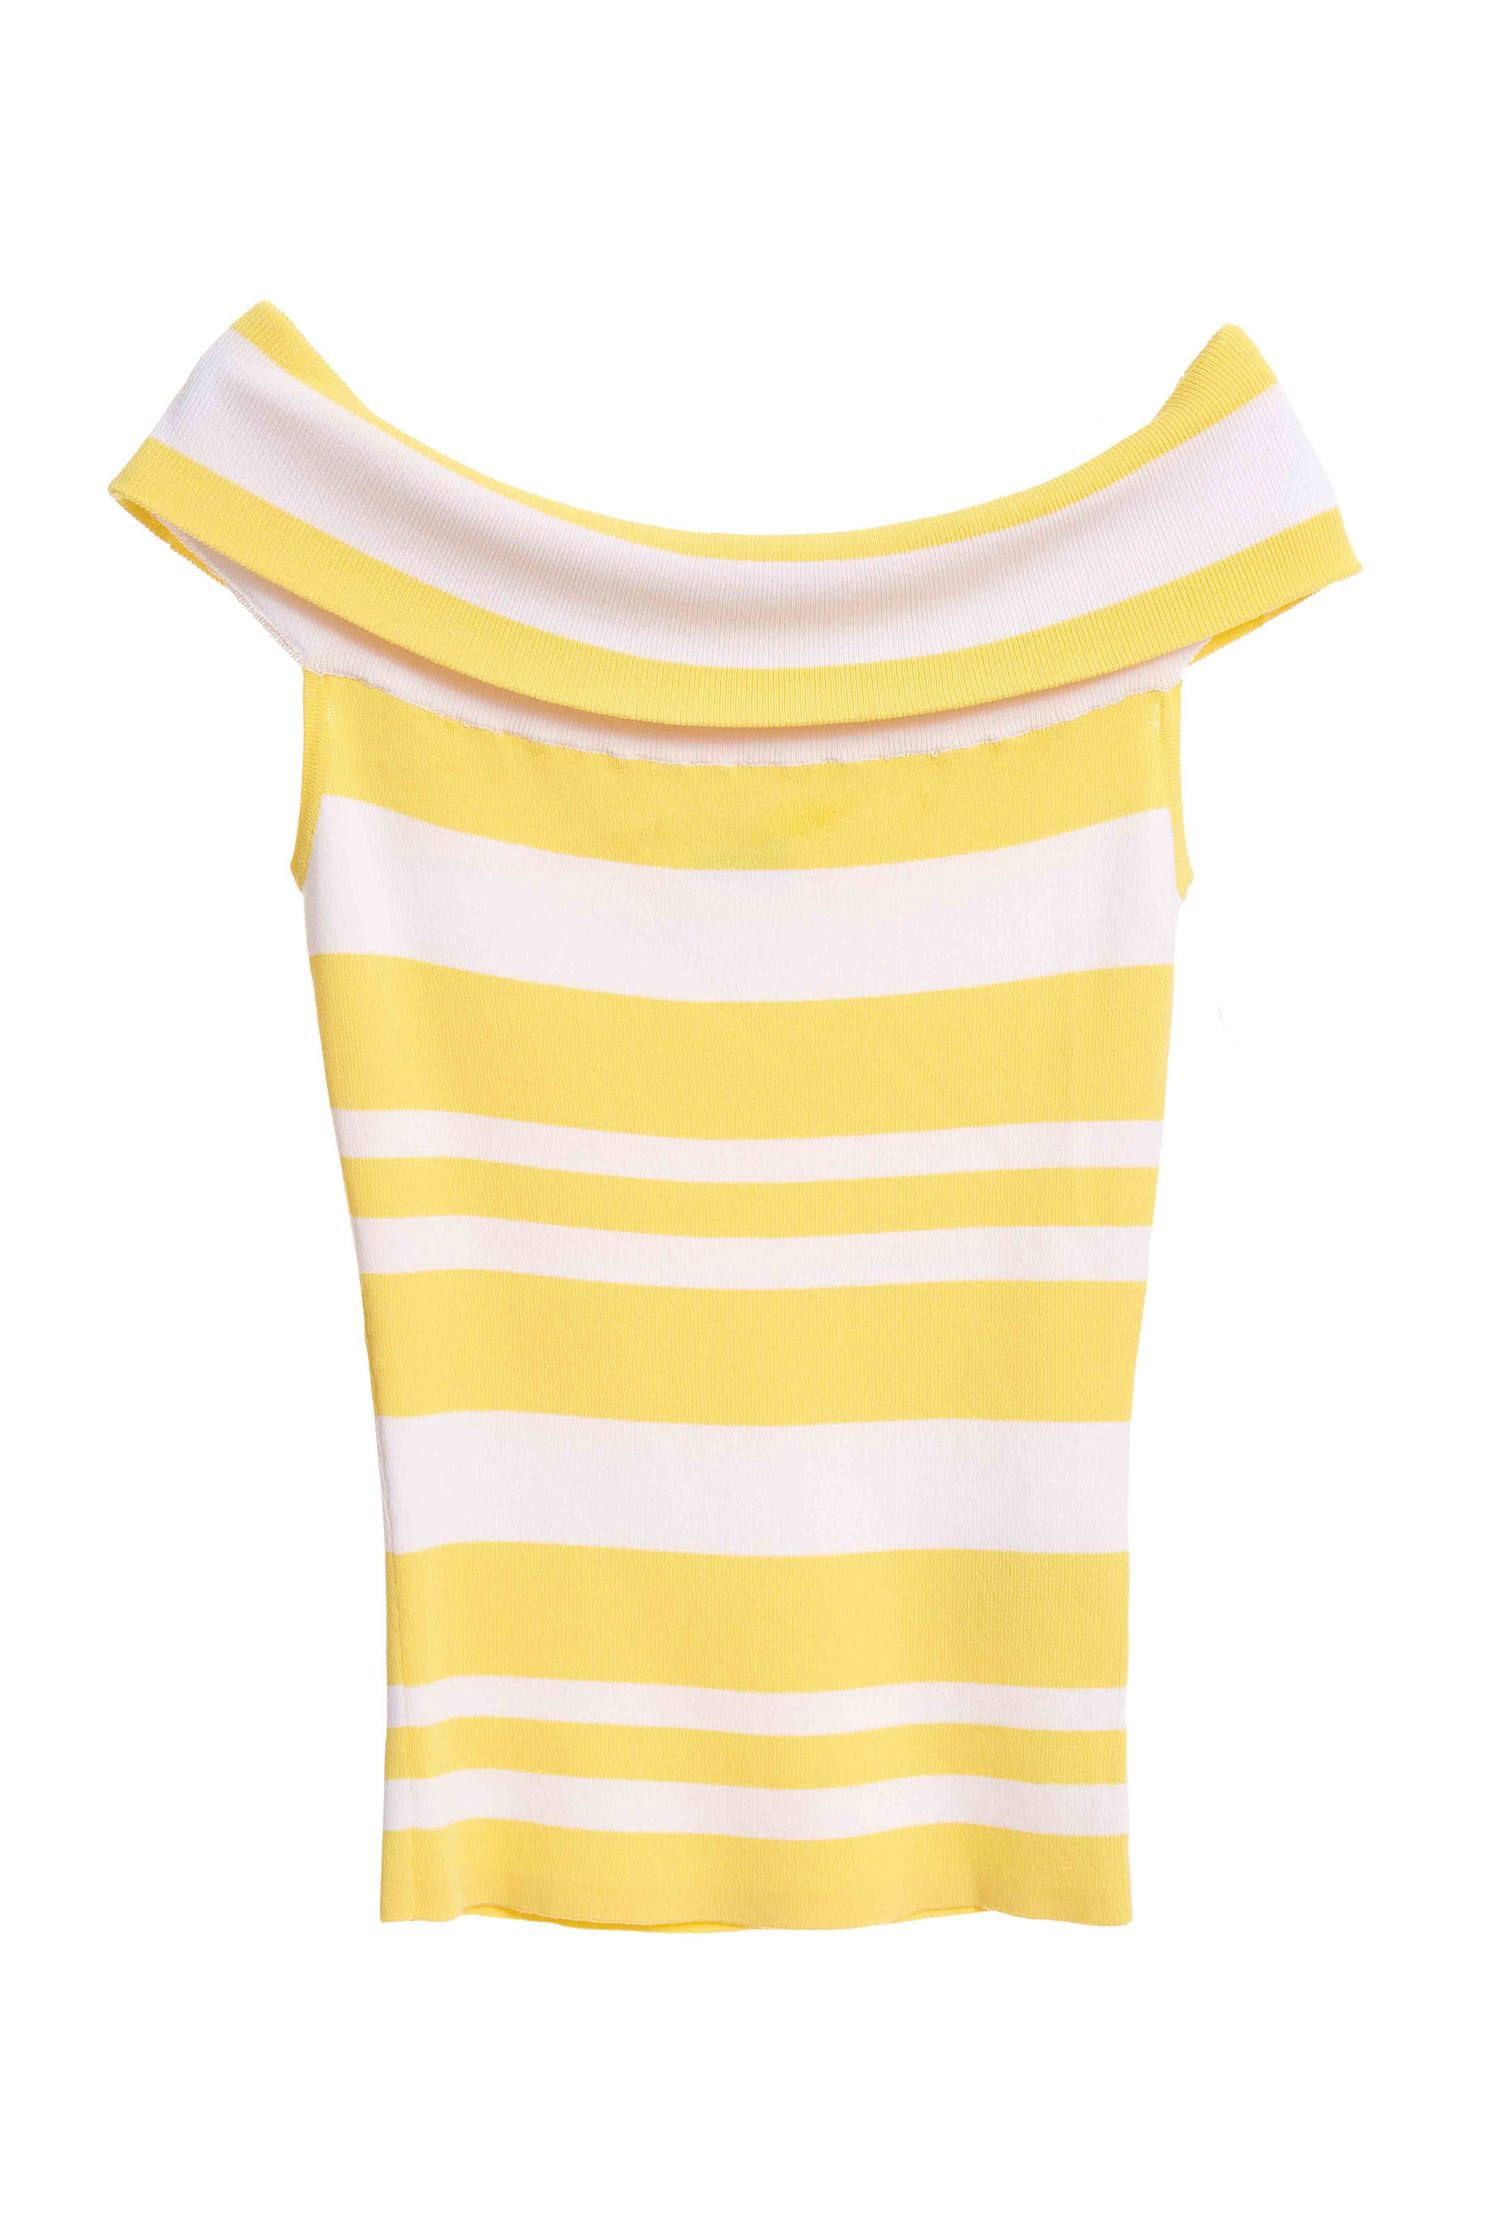 Knitted elastic striped top